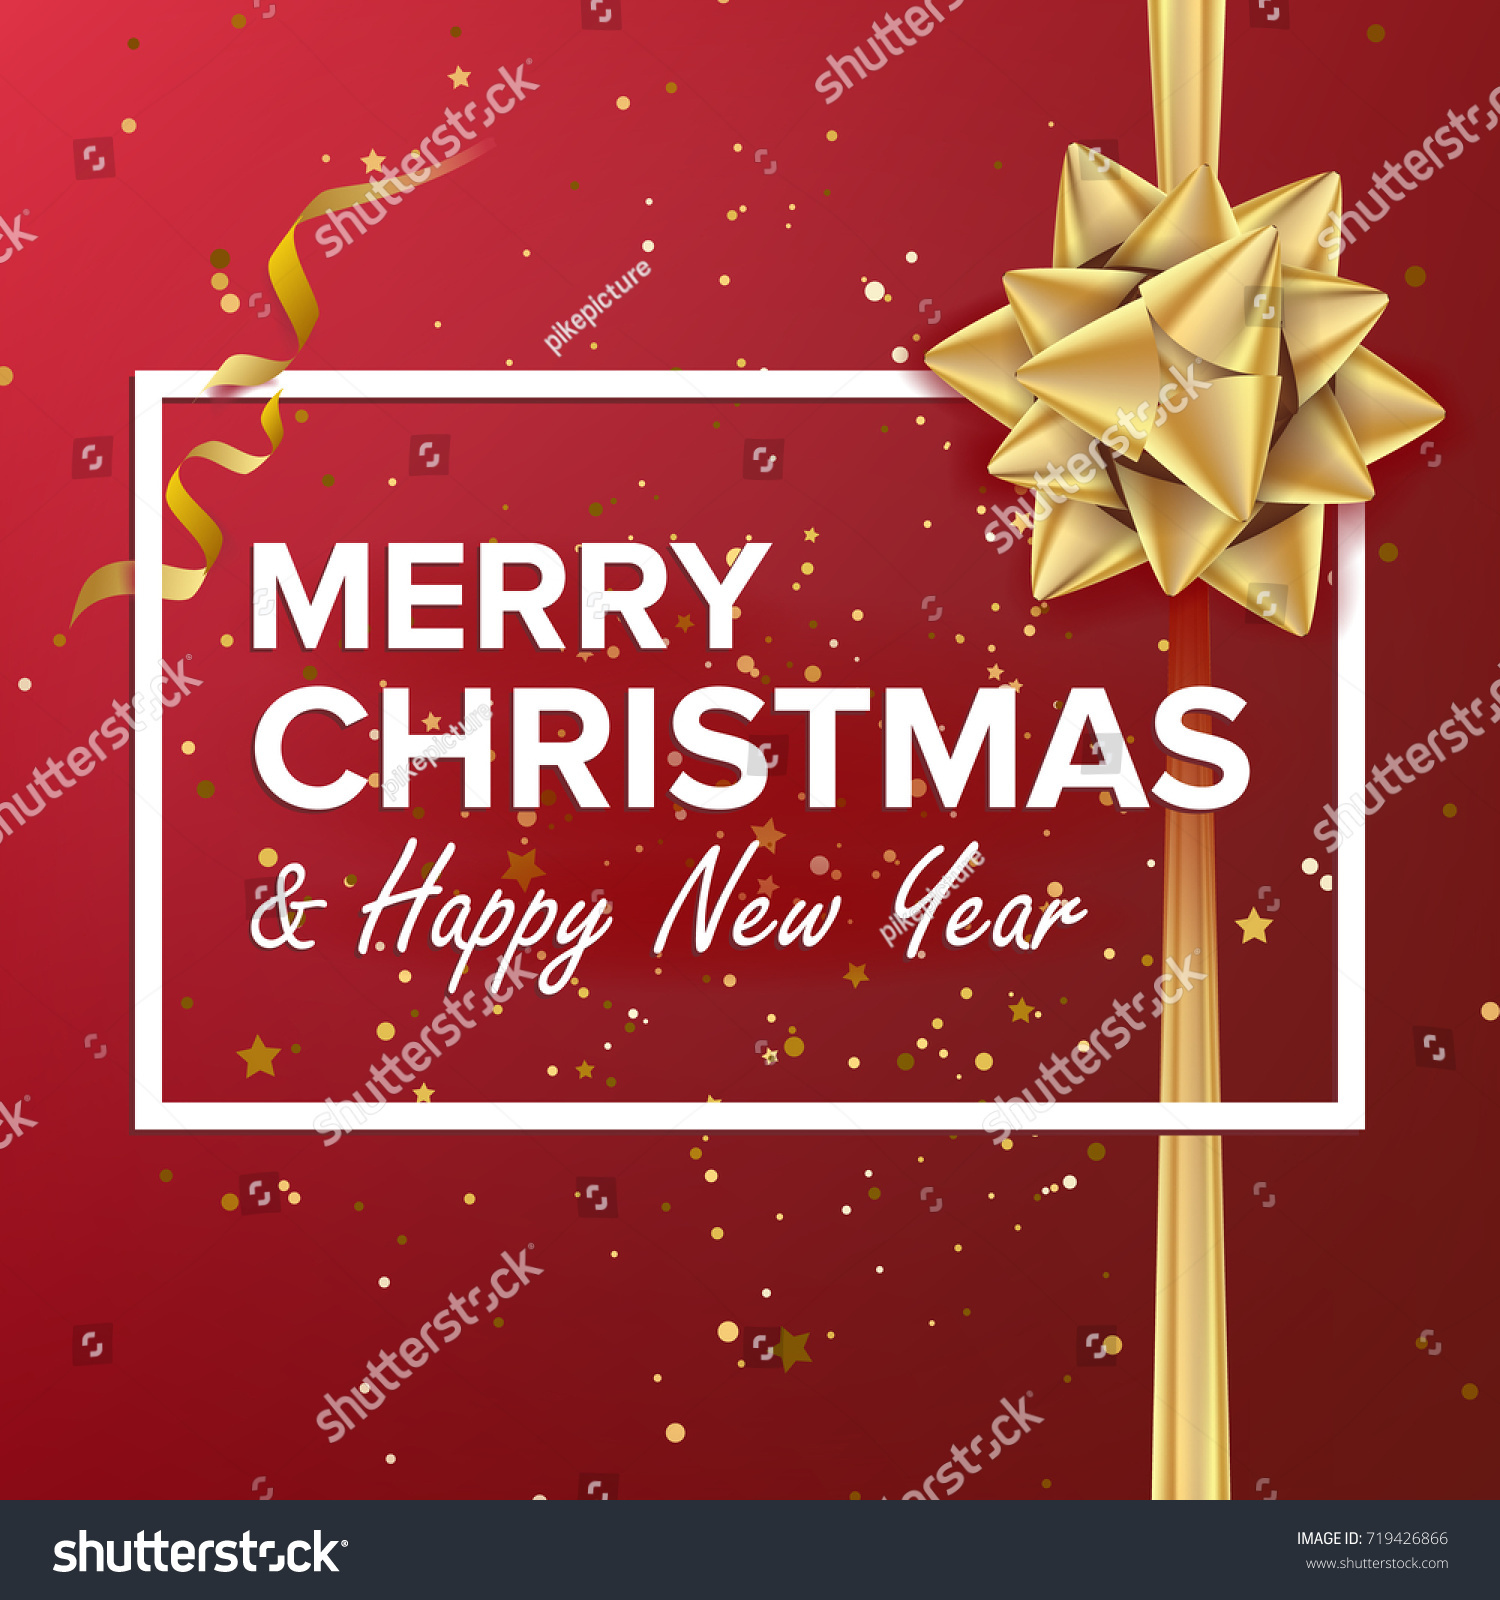 Merry Christmas Card Christmas Greeting Card Stock Illustration